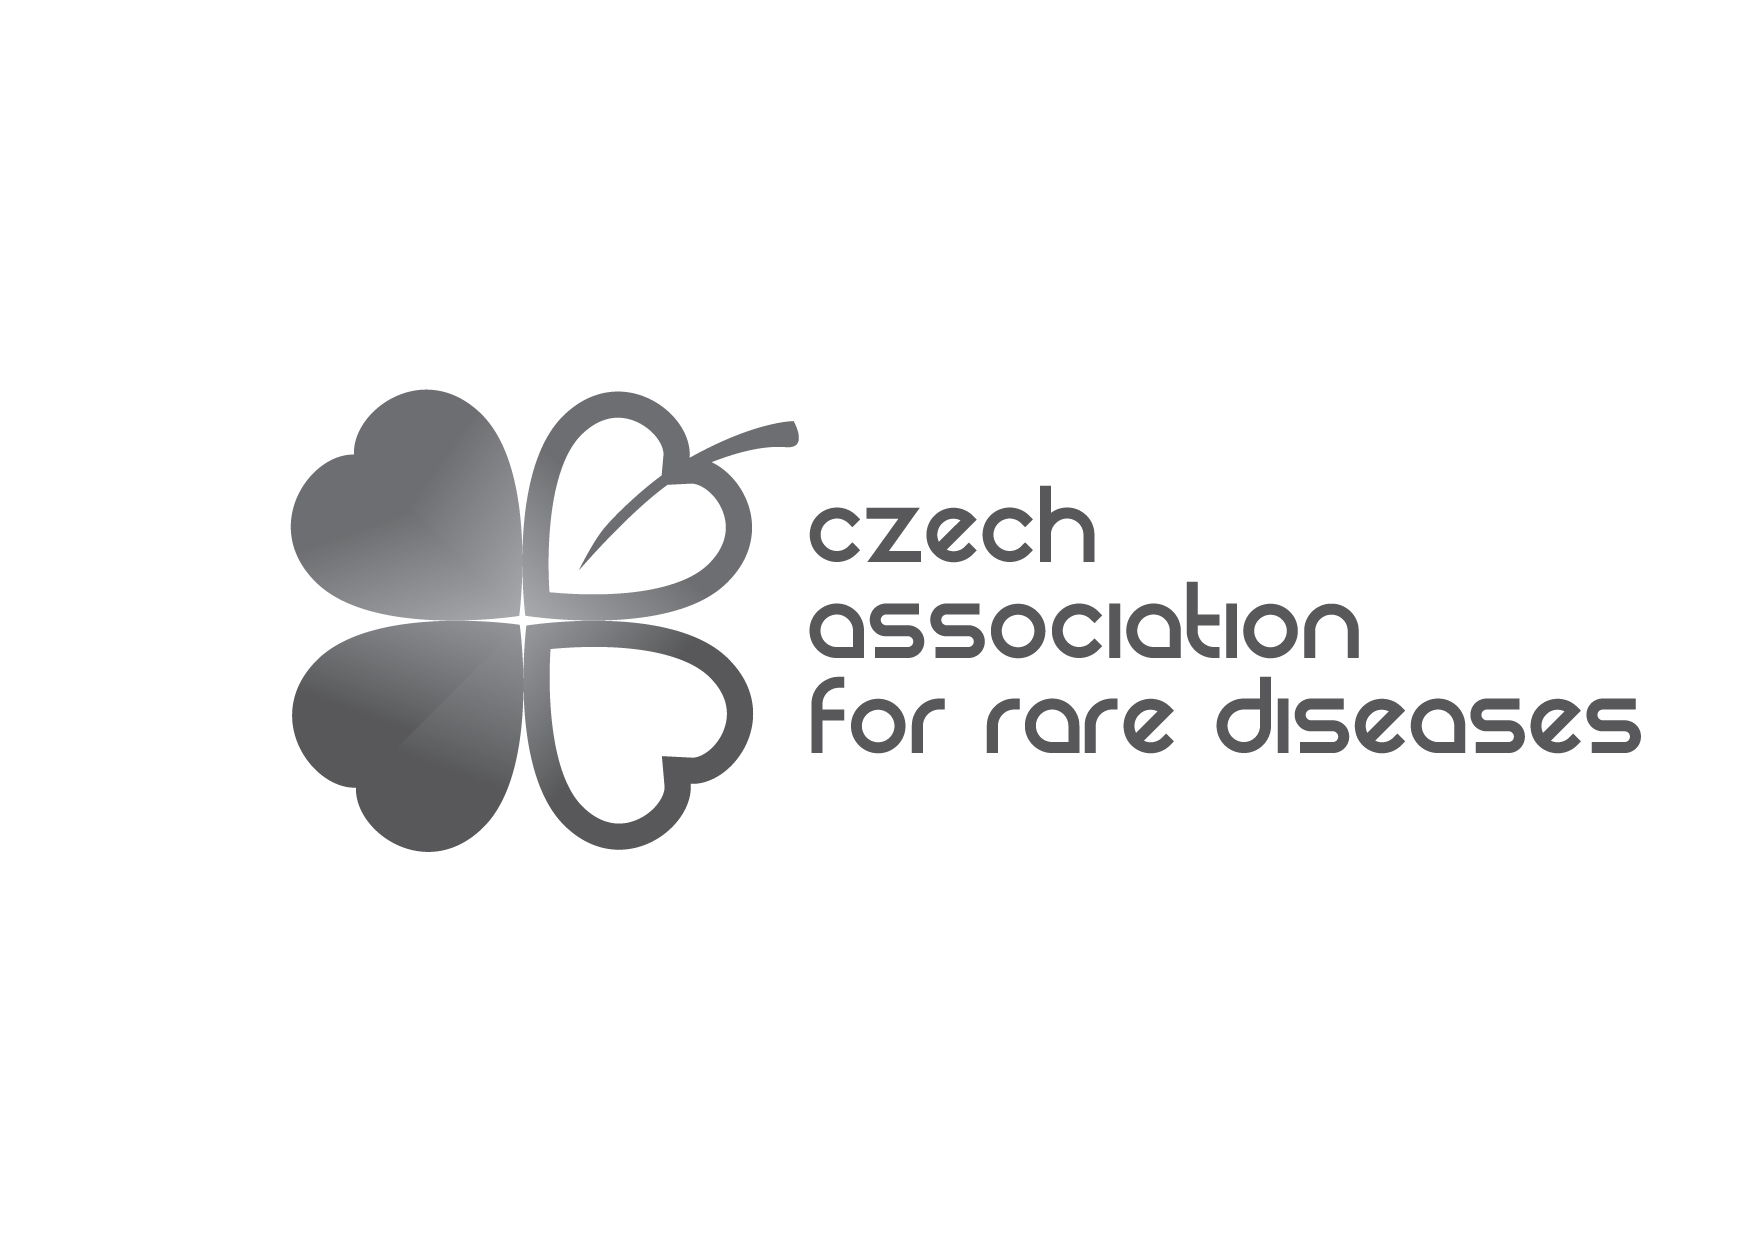 czech association for rare diseases LOGO BW